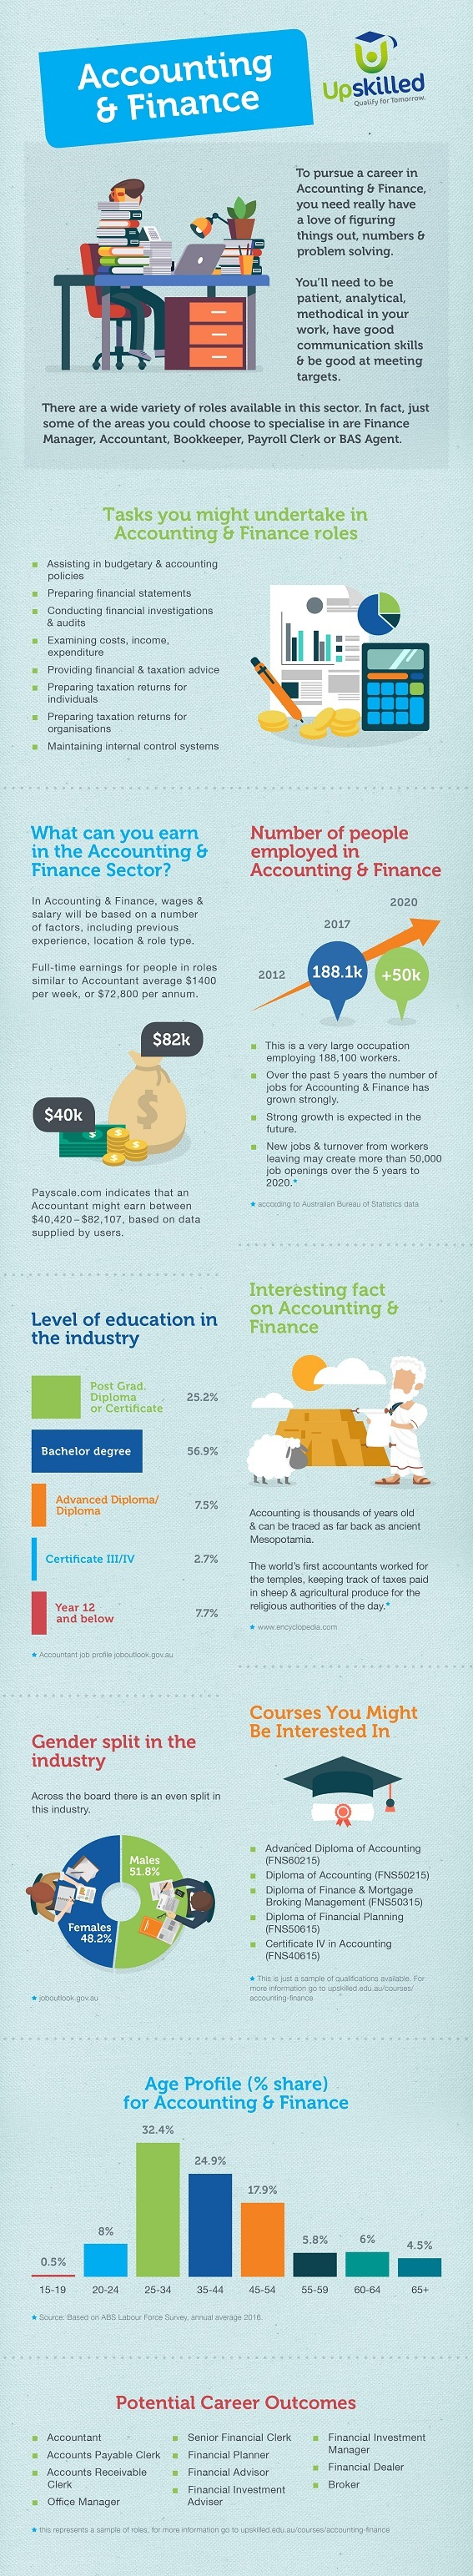 upskilled accounting and finance infographic